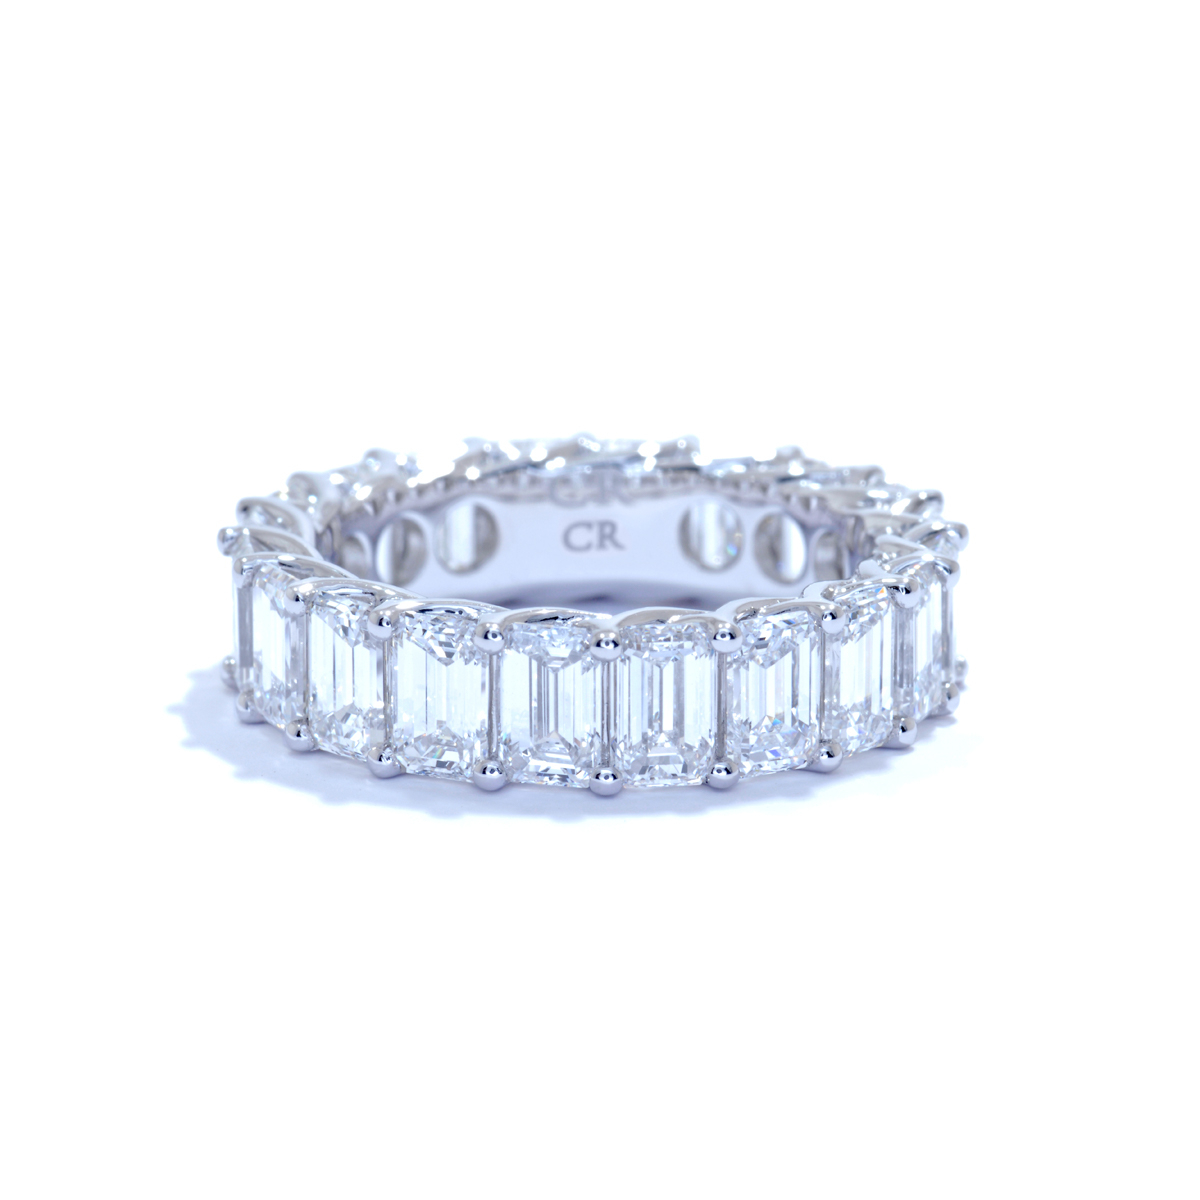 Wedding Bands – Ascot Diamonds Pertaining To Most Up To Date Diamond Braid Anniversary Bands In White Gold (View 13 of 25)